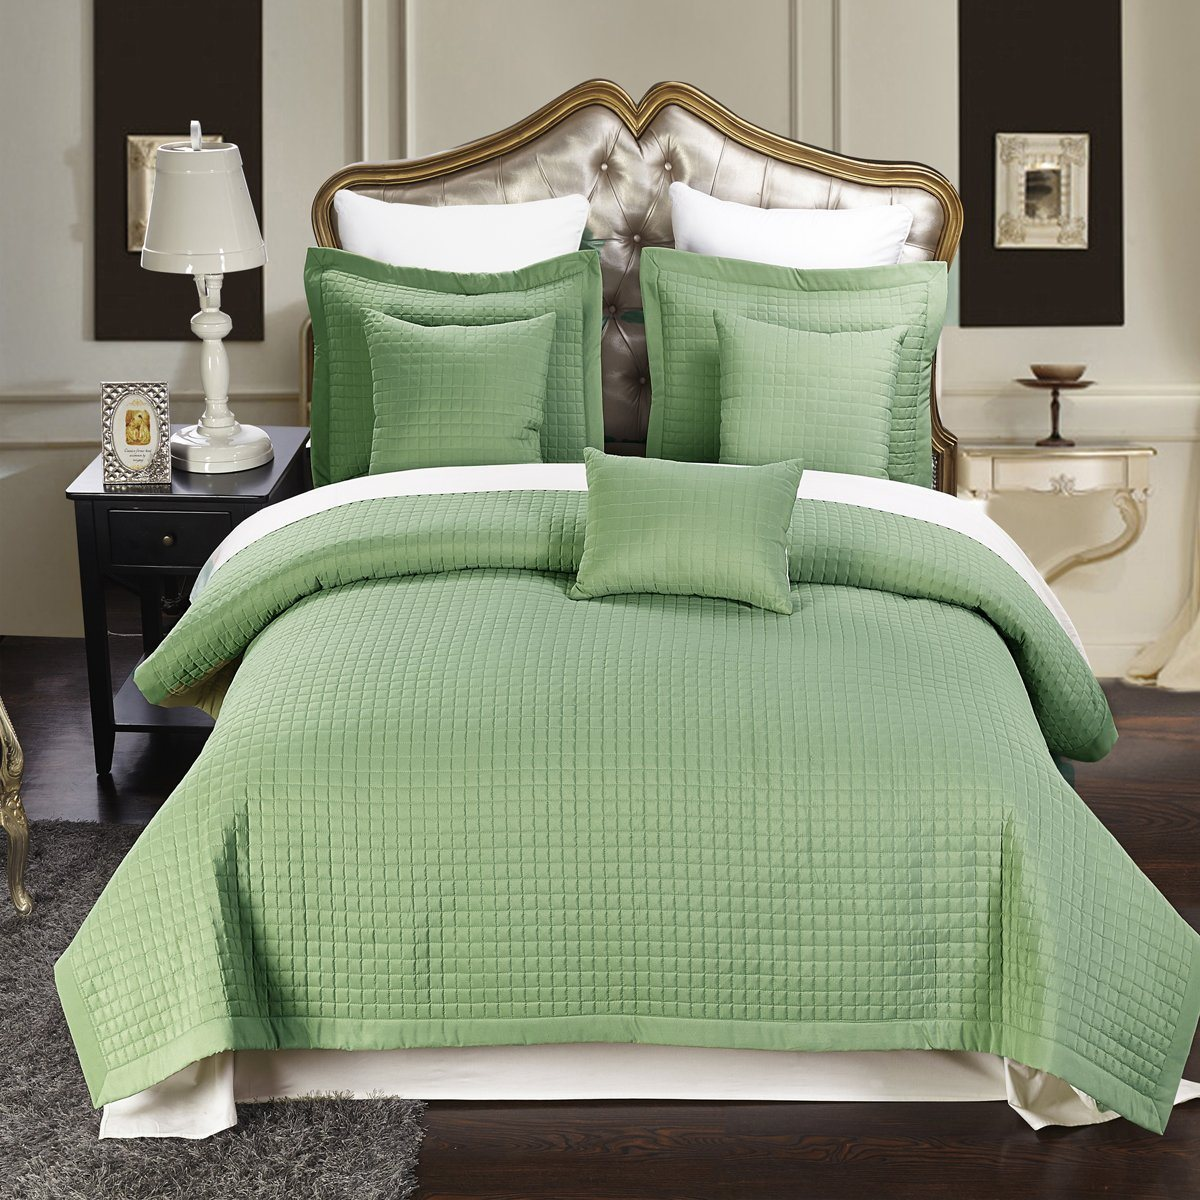 Microfiber Checkered Bed Spread From China Factory (DPF10796)